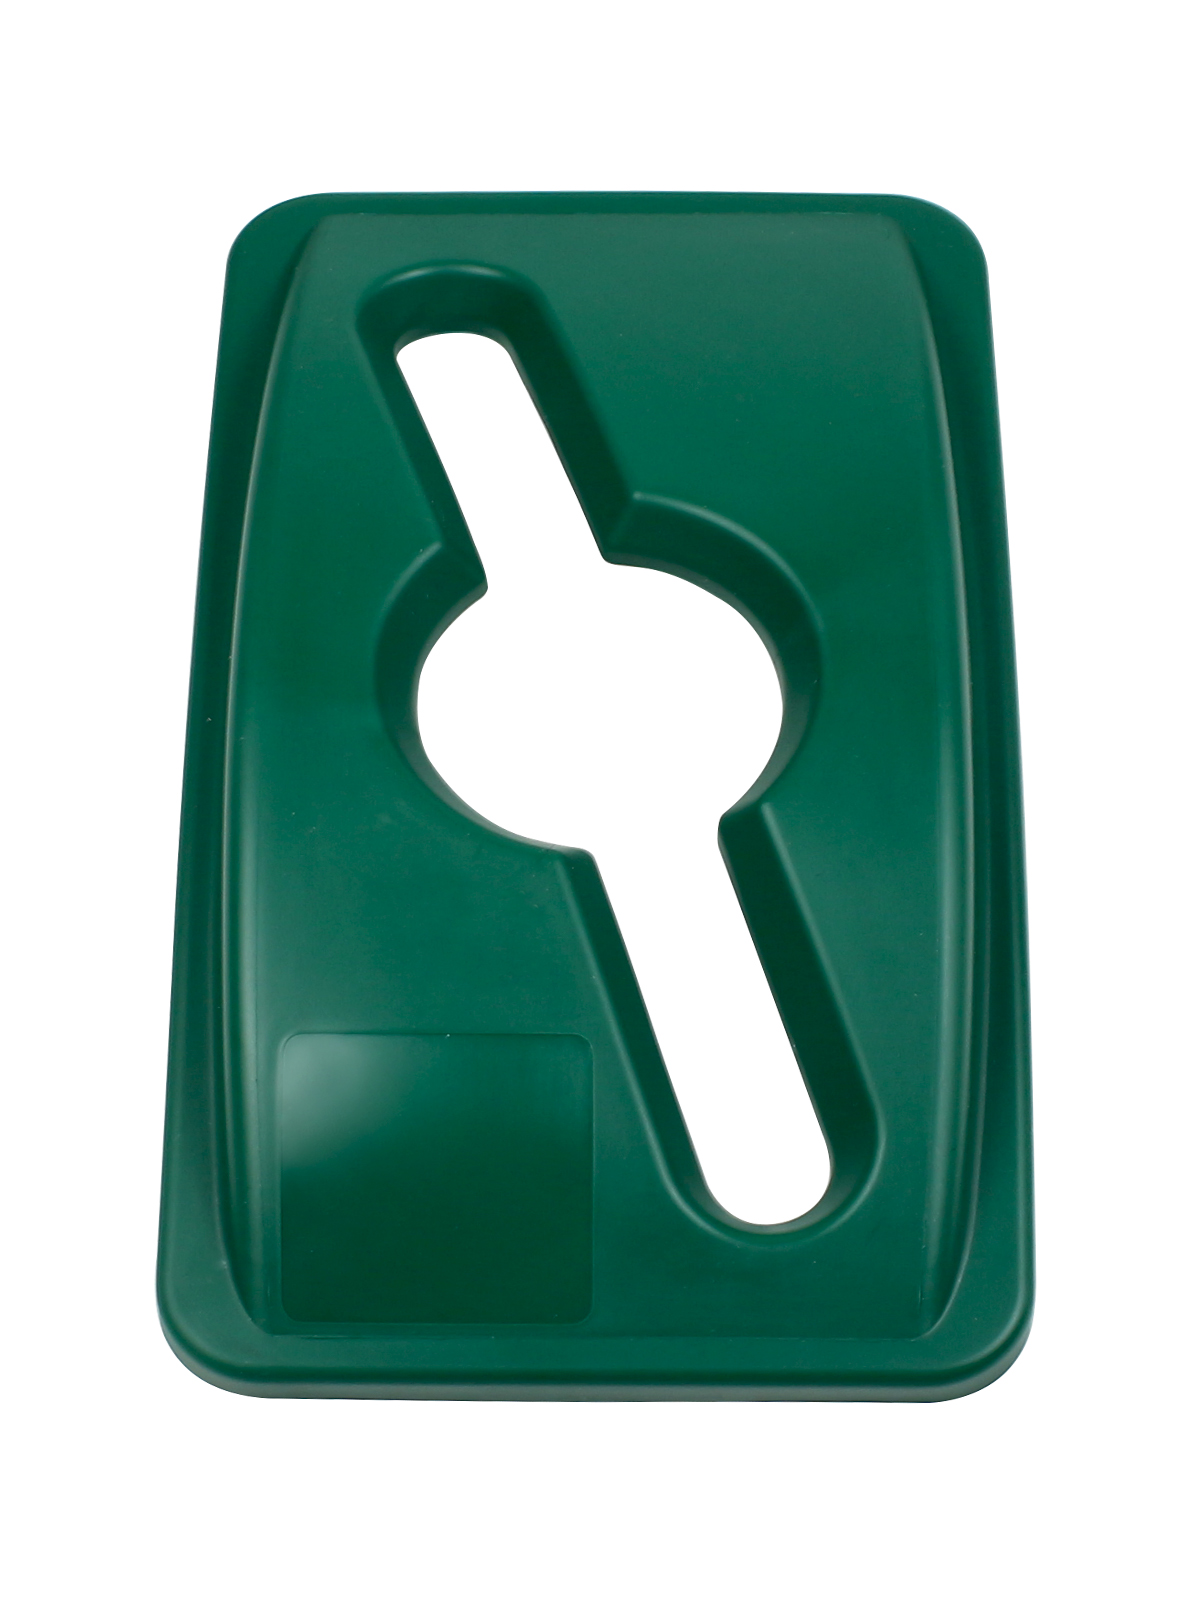 WASTE WATCHER - Lid - Mixed - Dark Green